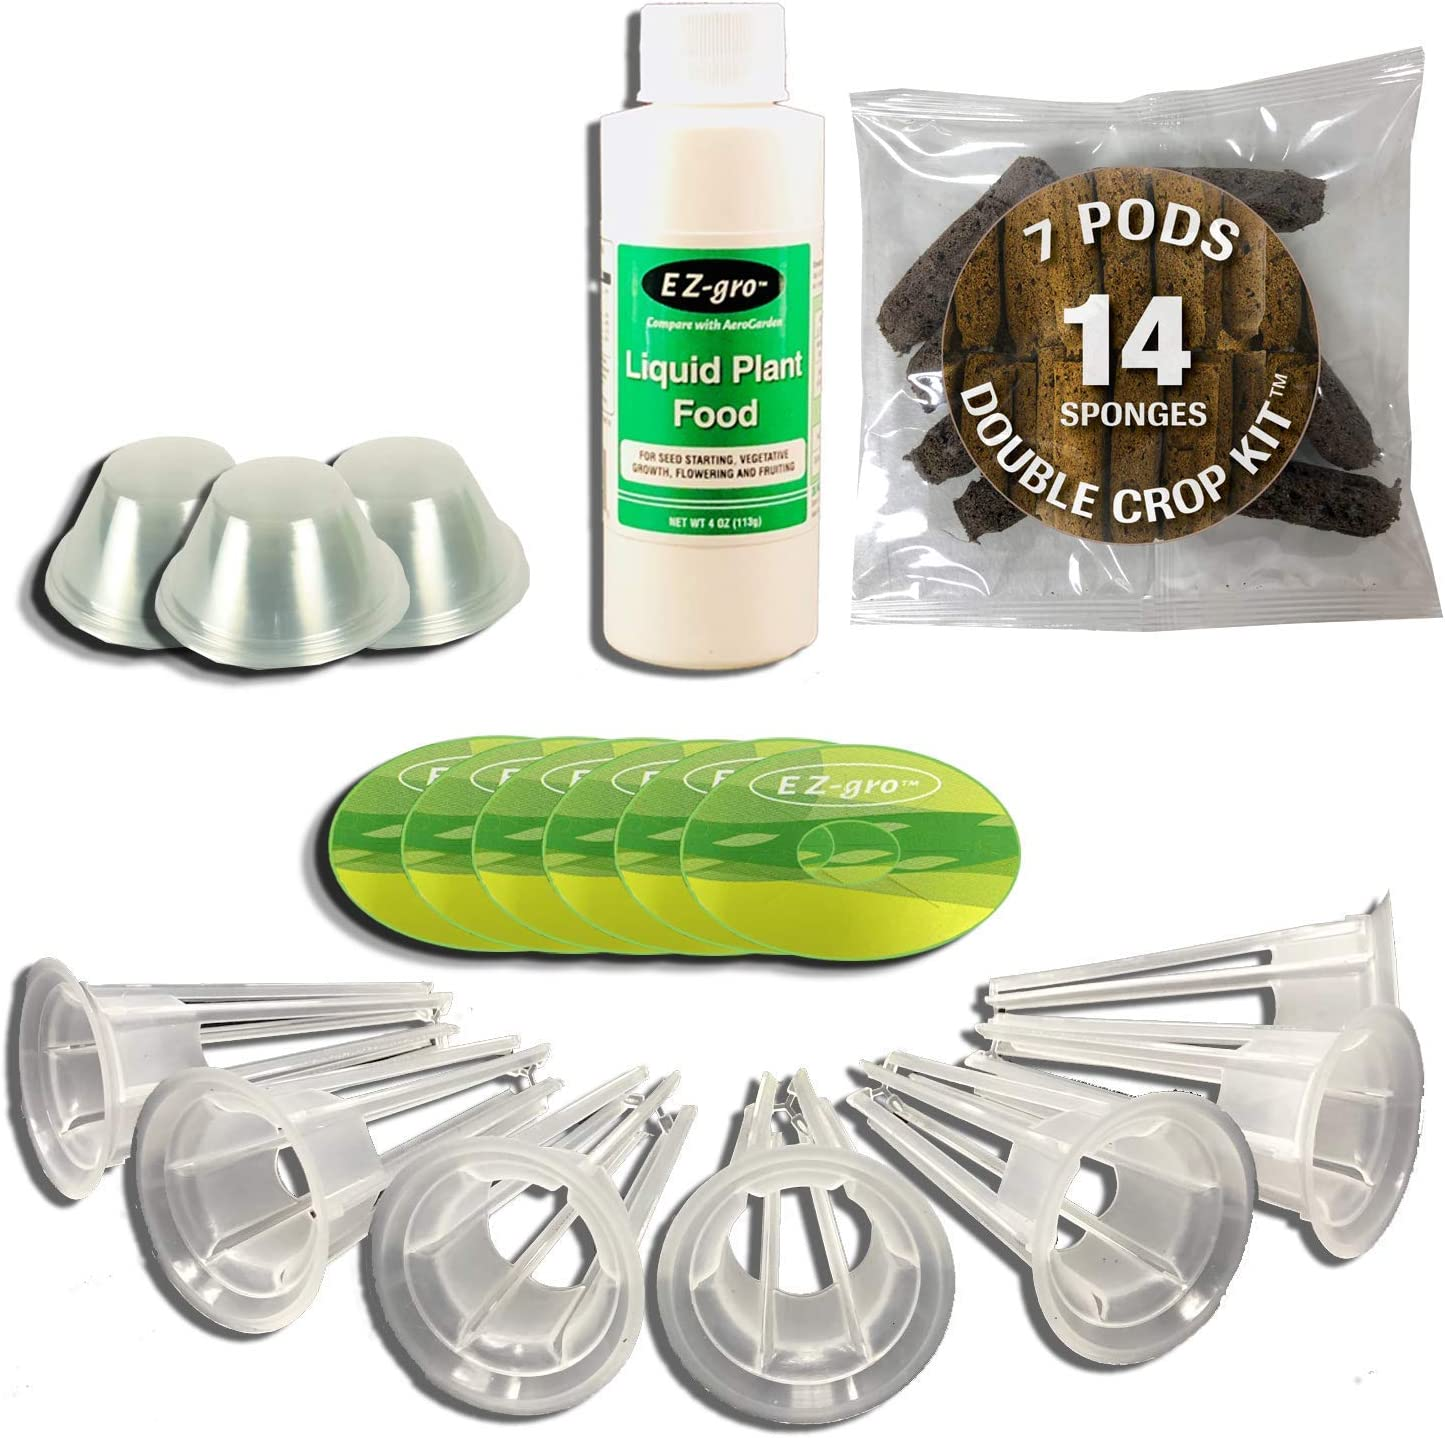 EZ-gro Seedless Double Crop Kit (7 Pod) Compatible with Aerogarden | Double Sponges for 2 Crops | Peel and Stick Labels | 25% More Fertilizer | Compatible with All Aerogarden Pods